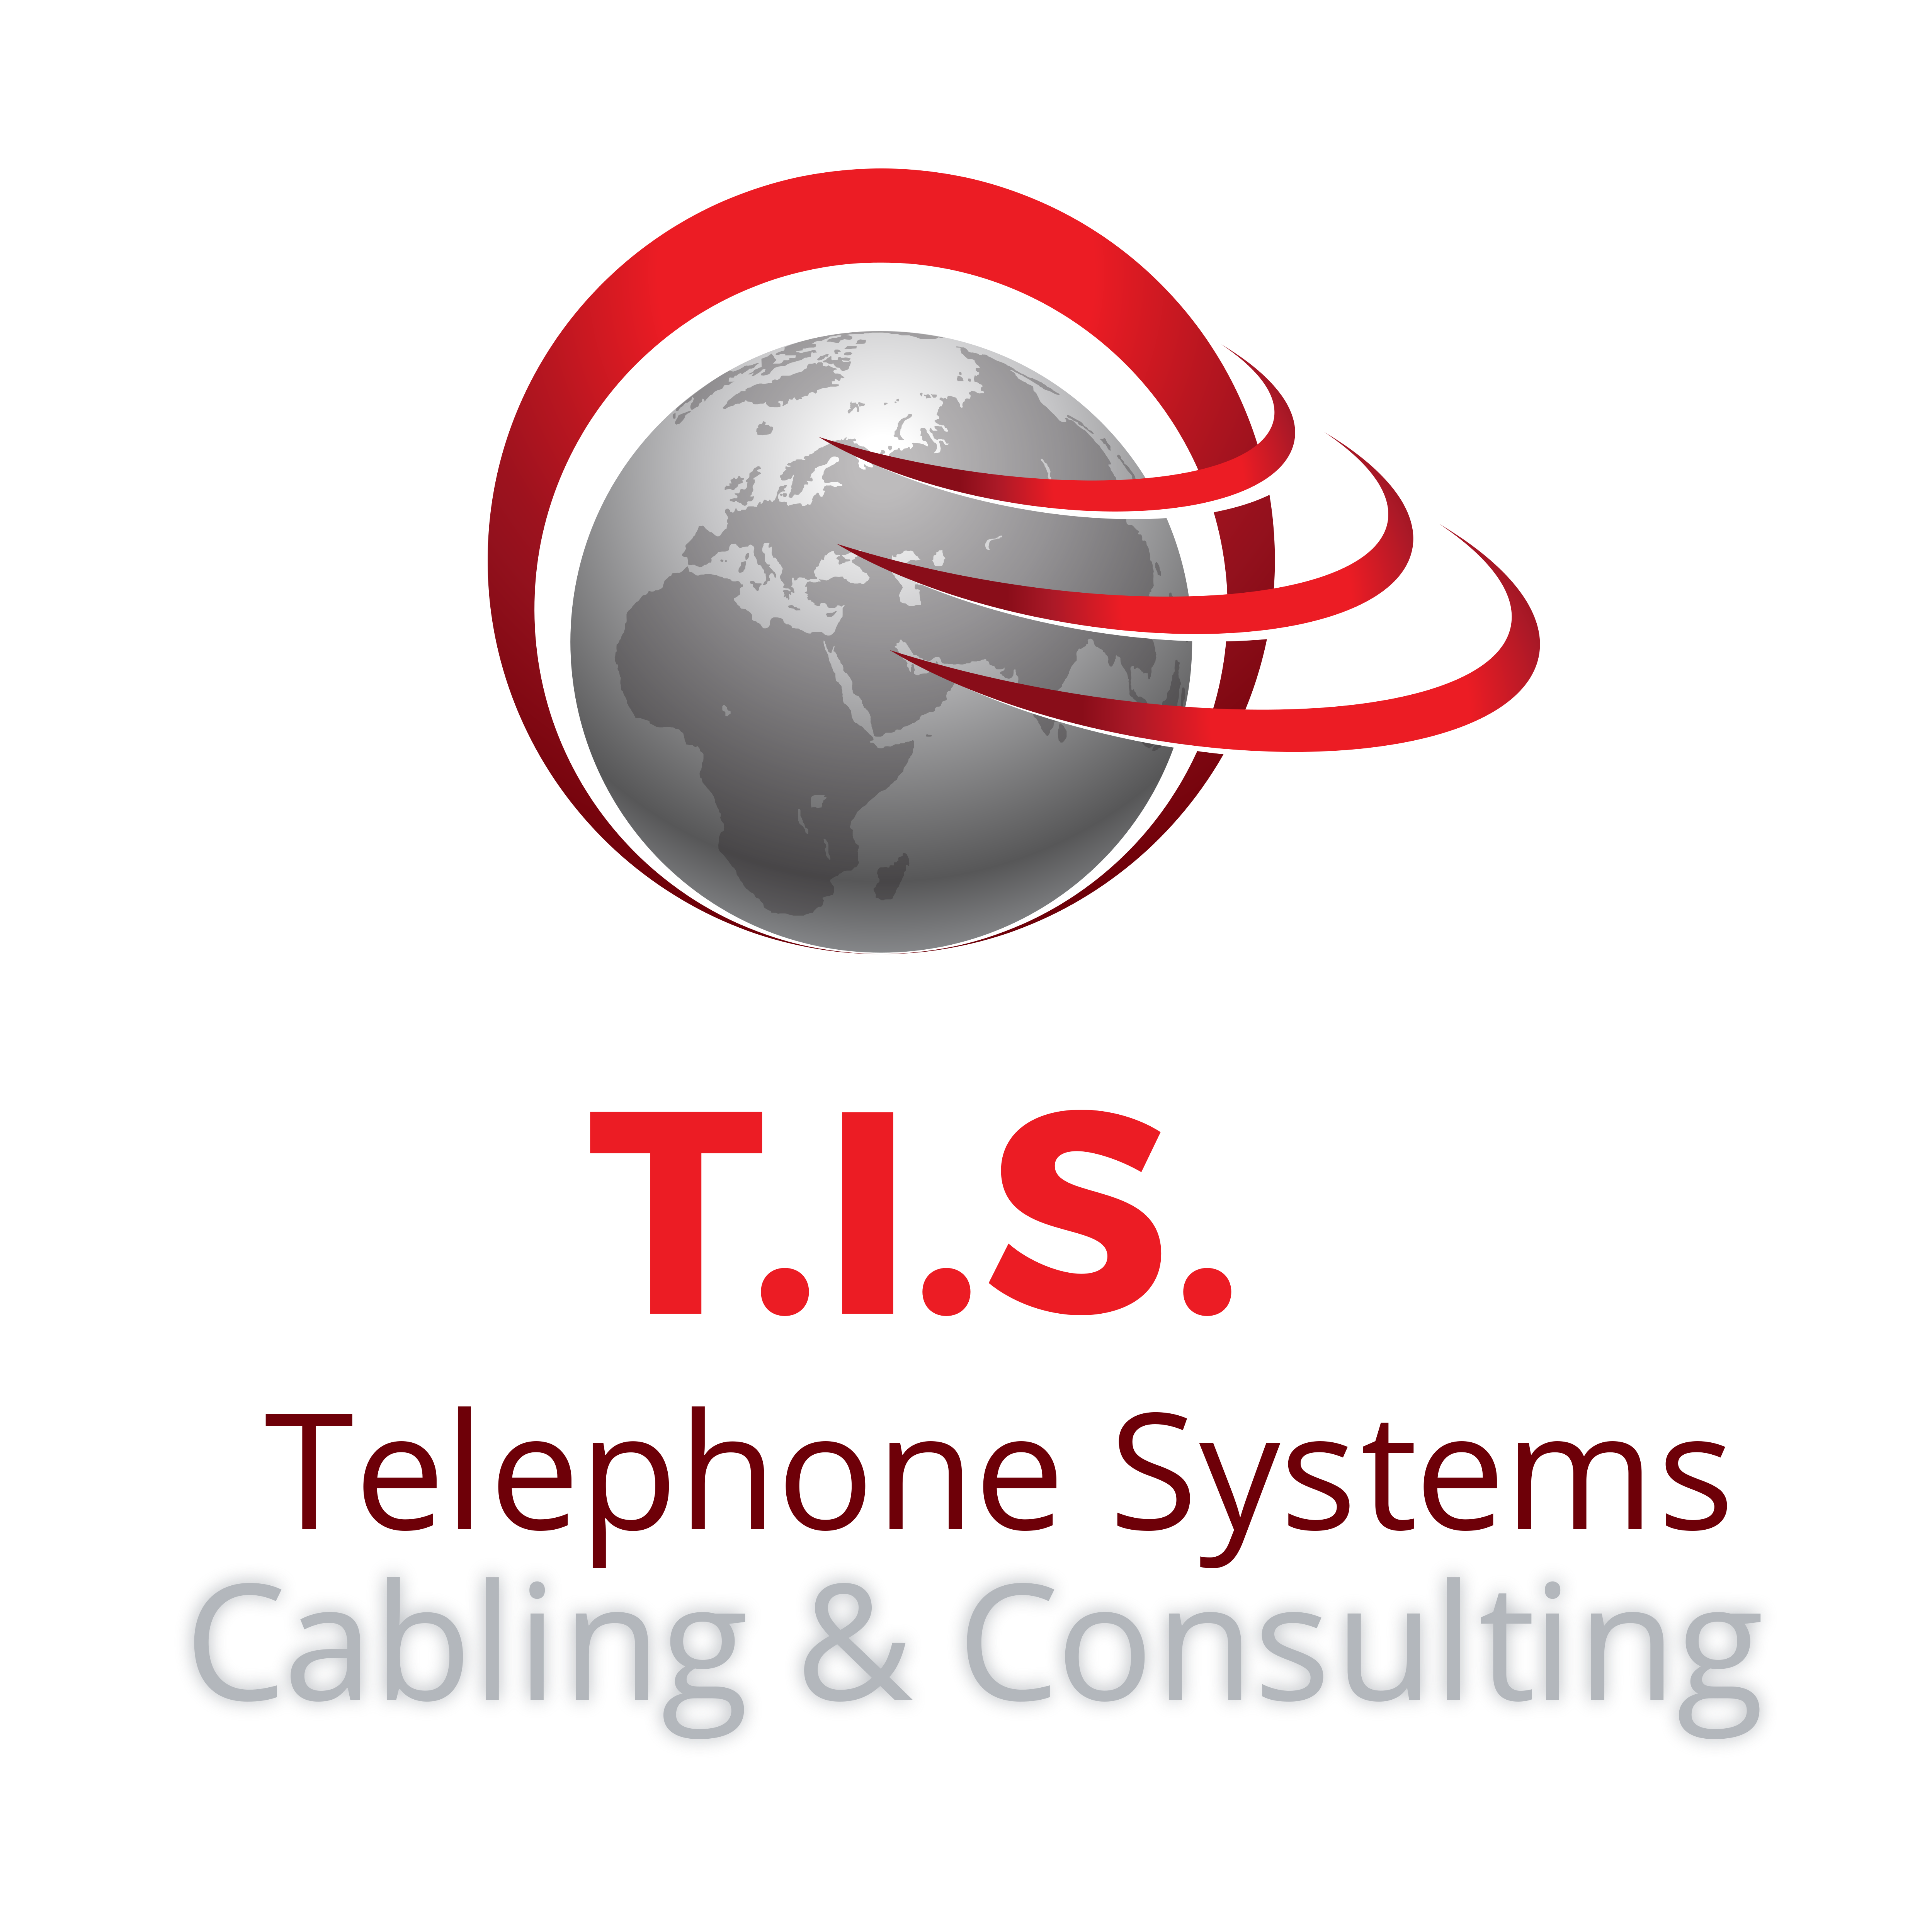 Telephone Installation Services Ltd